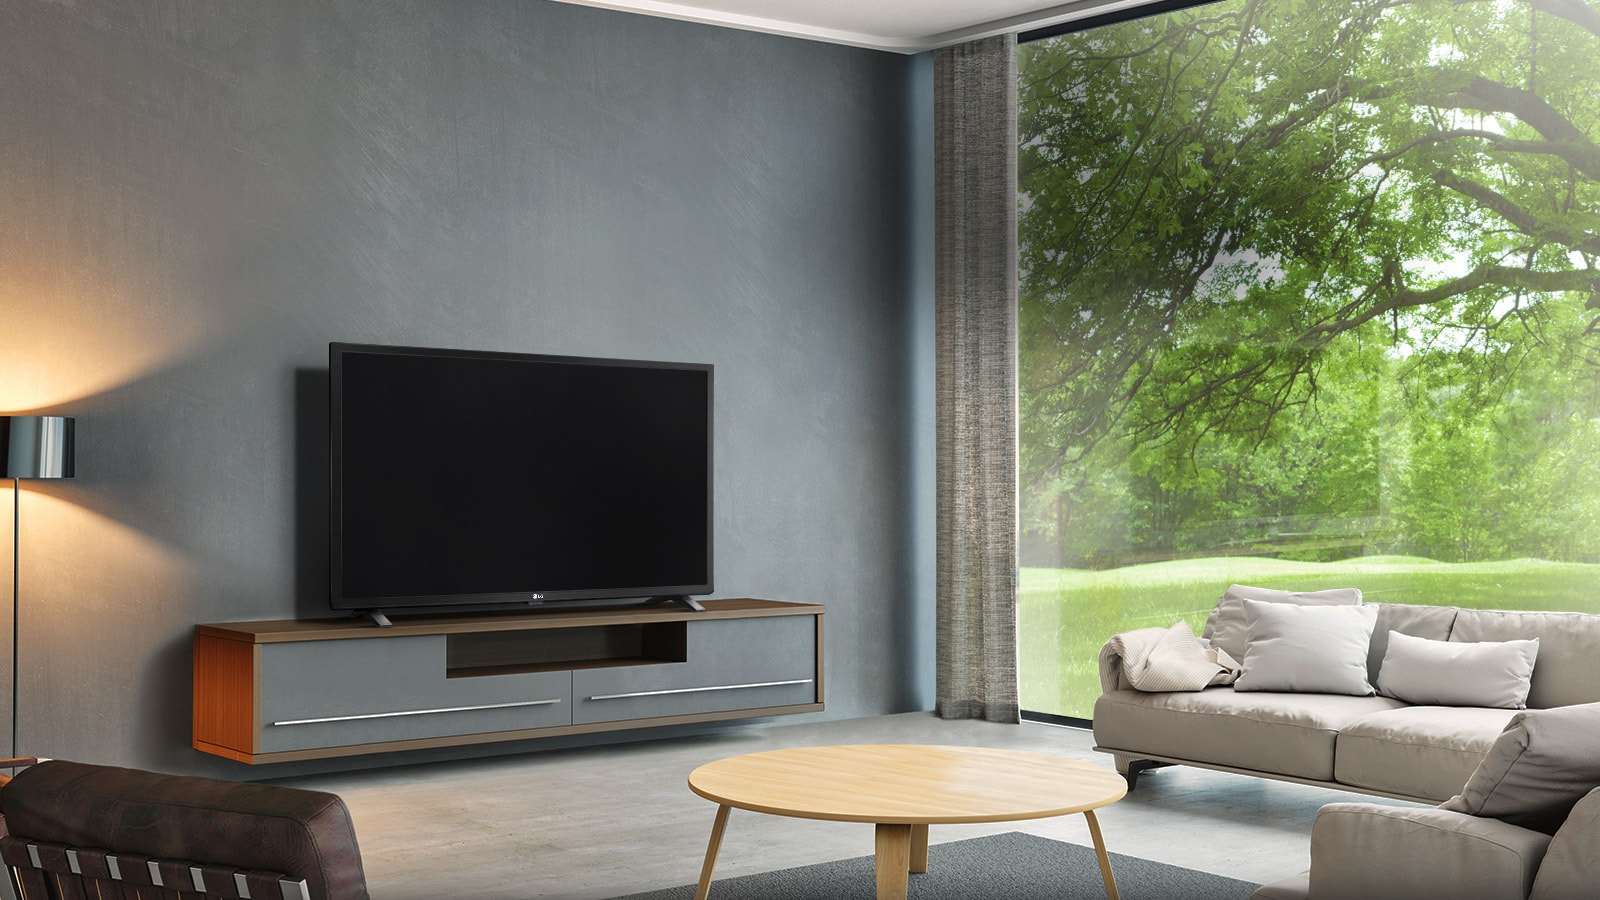 LG Simple yet Sophisticated Design Smart TV